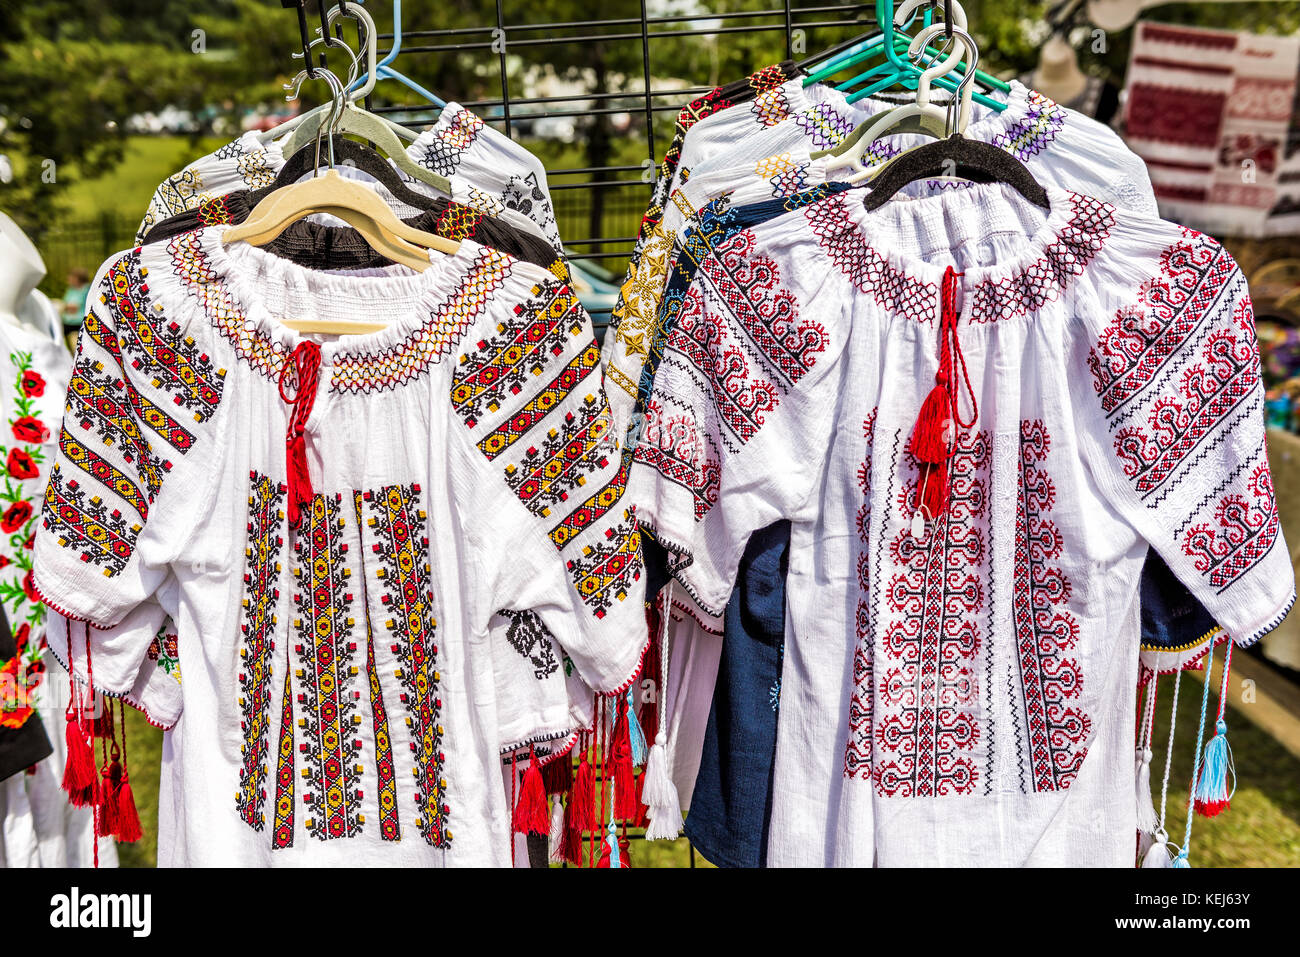 Display of embroidered Ukrainian slavic women traditional shirts embroidery clothing in outdoor flea market - Stock Image